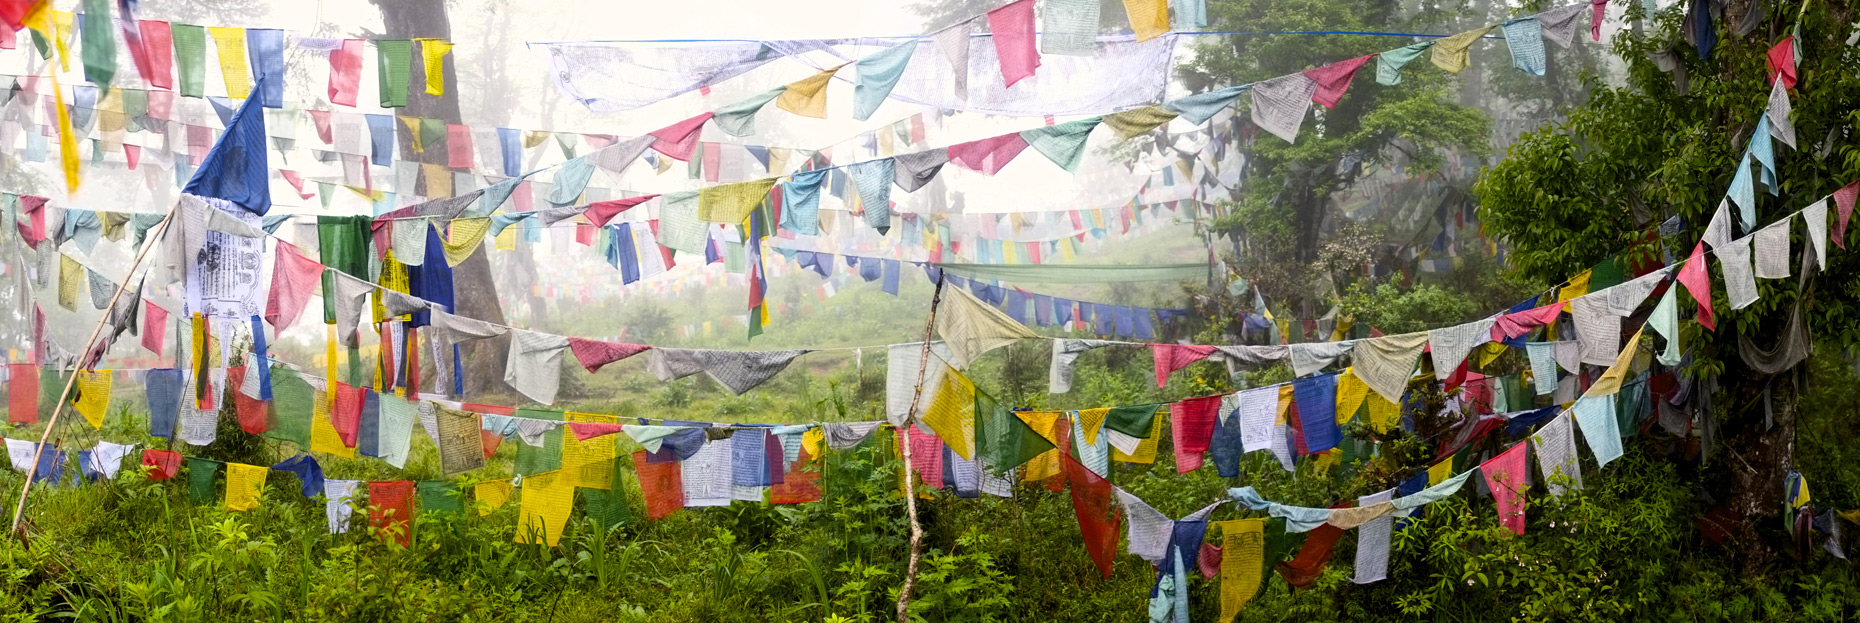 Prayer flag forest in fog,Bhutan/Steve Mason Photography